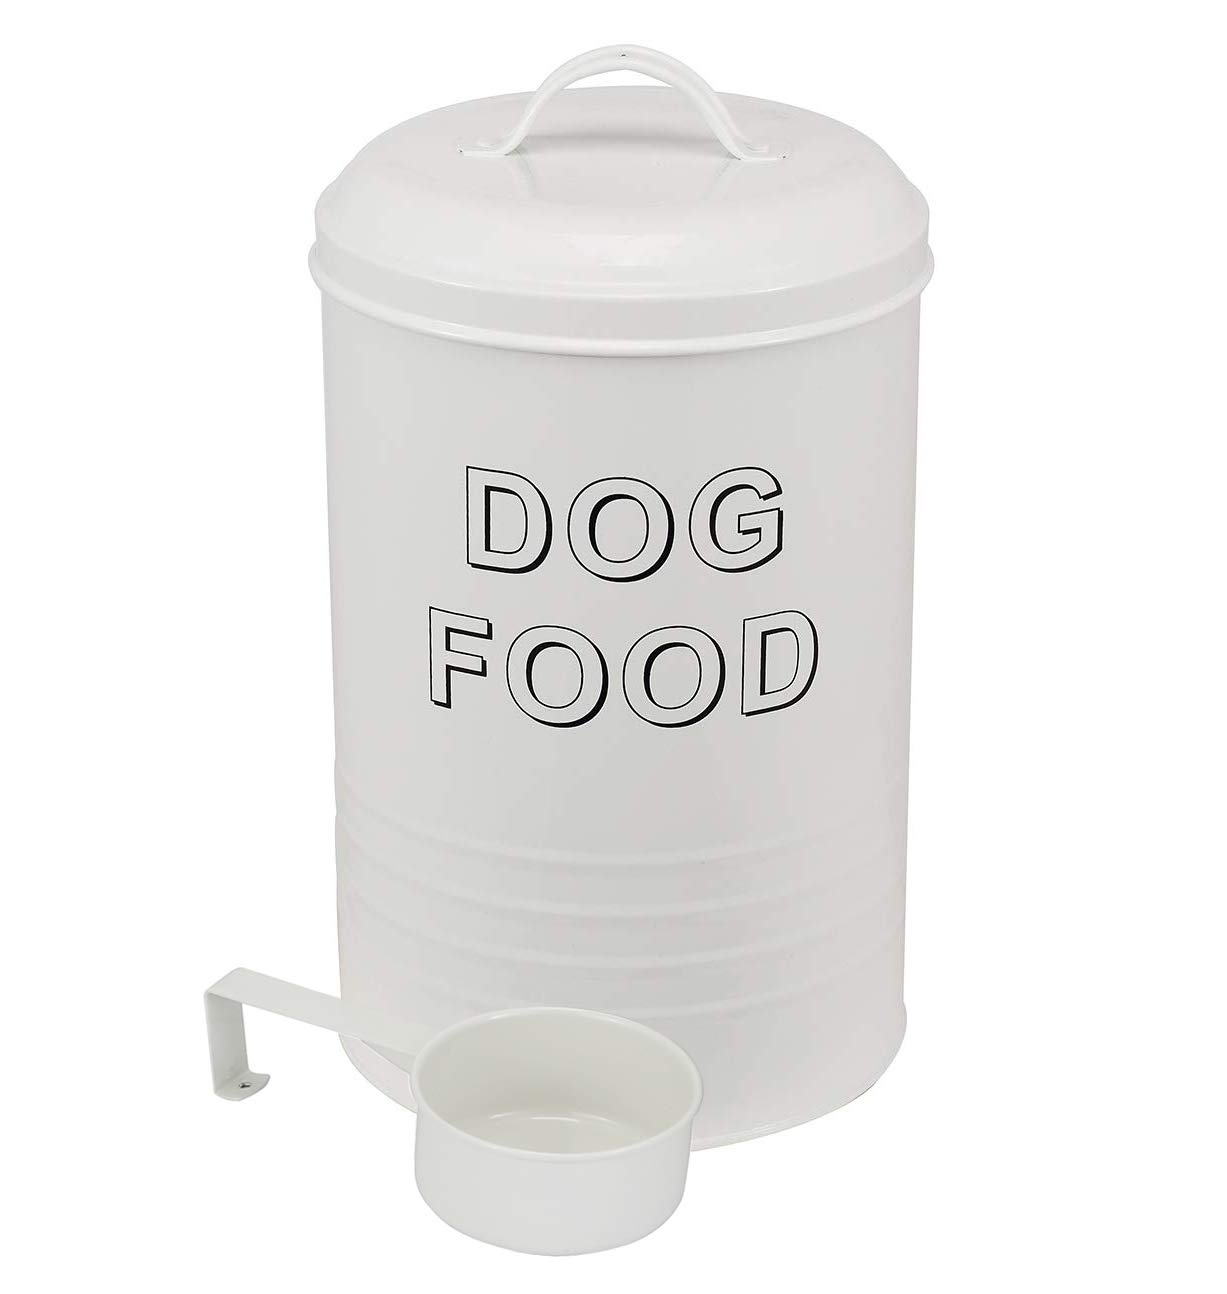 Dog Food Container - Pets Good Dog Food Storage Canister, 7lbs Capacity - Scoop Included